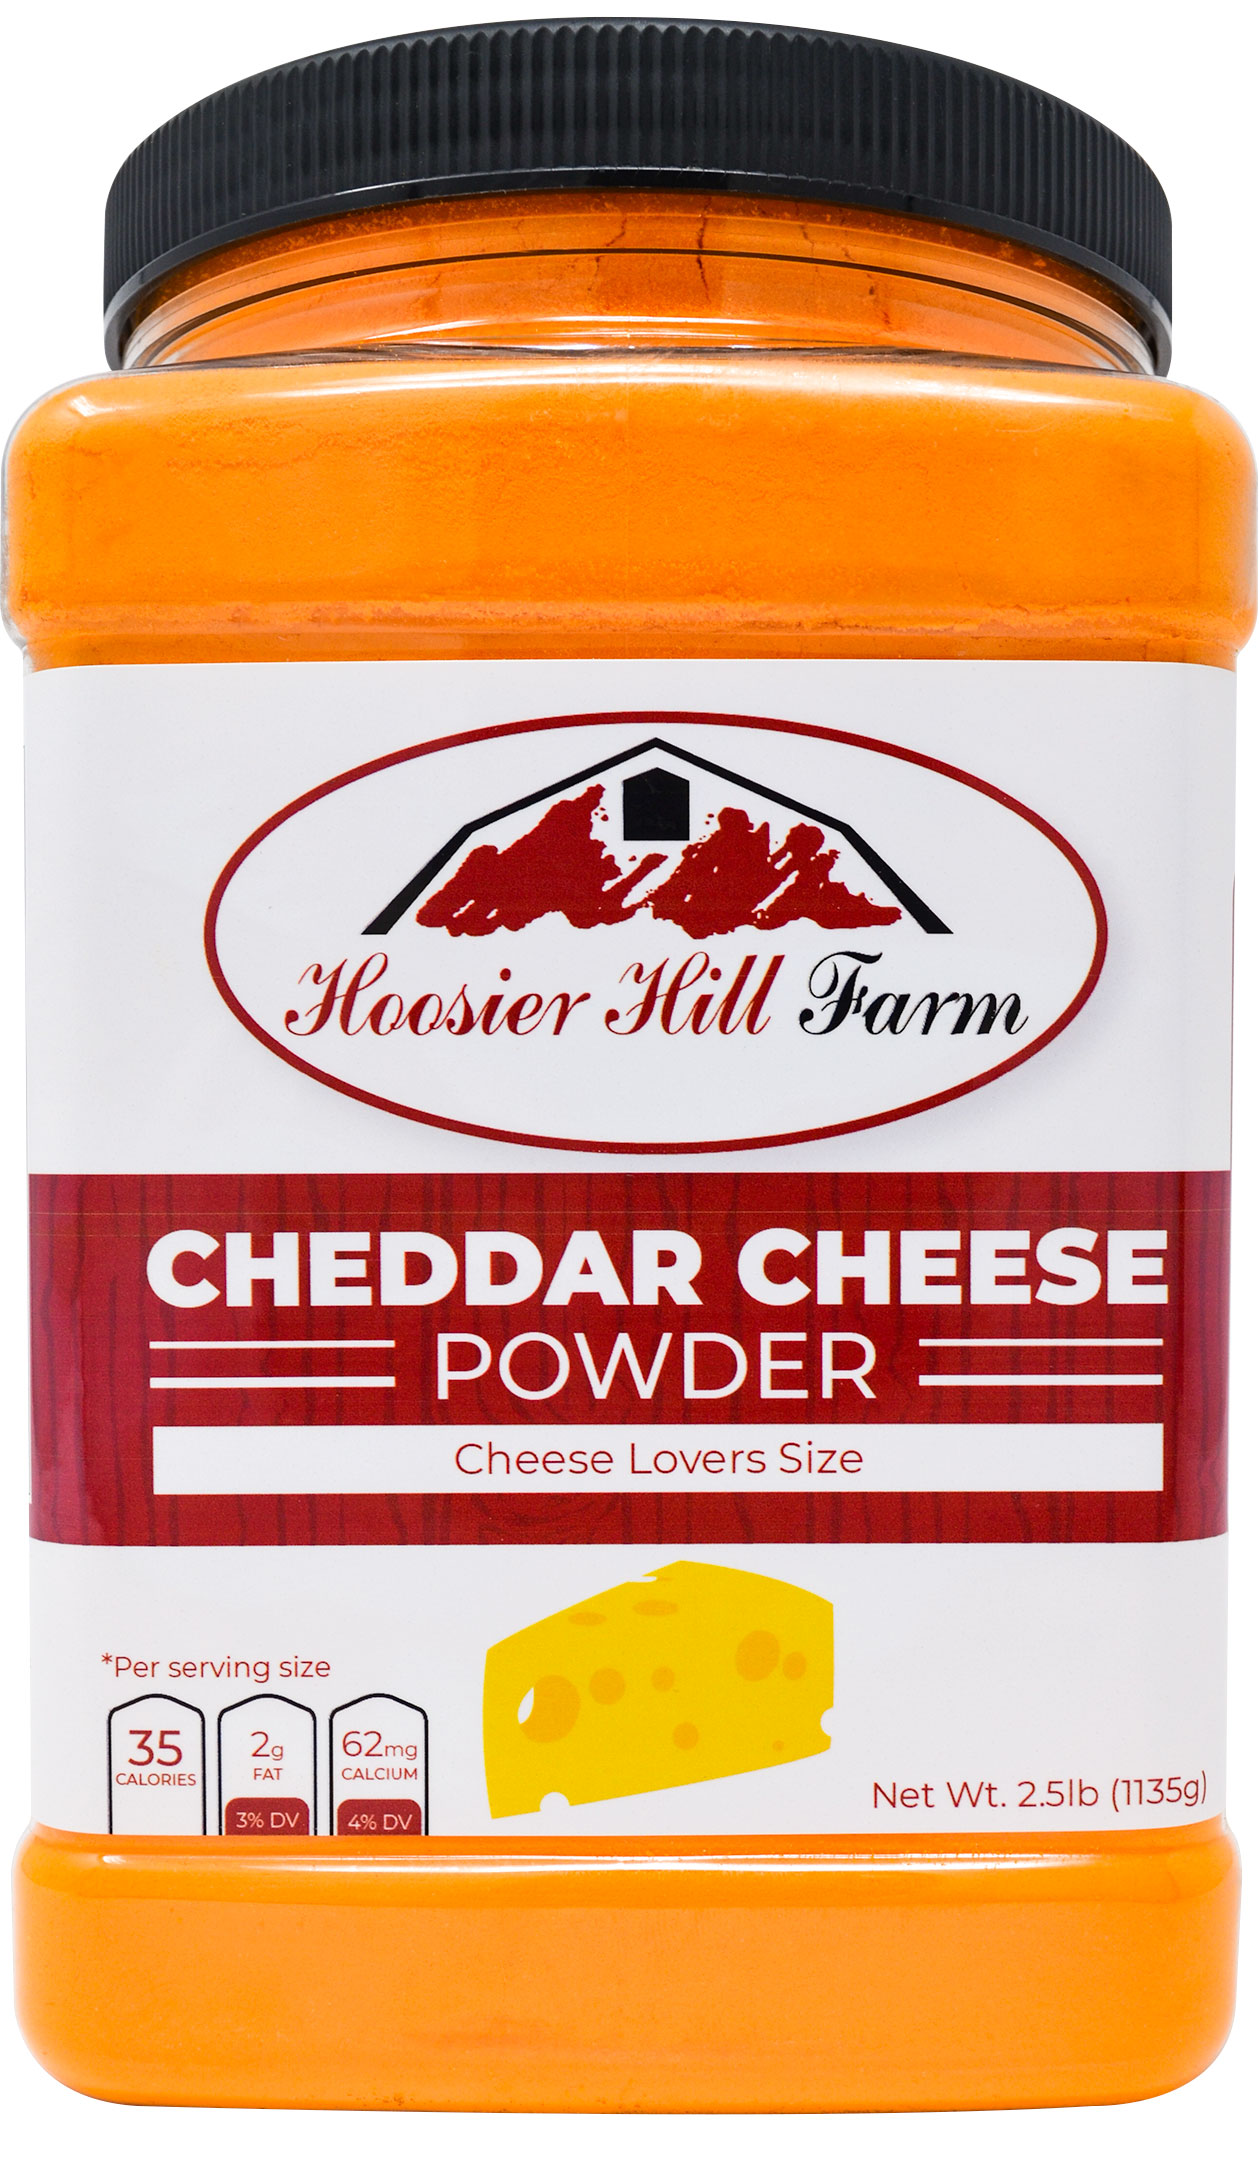 Hoosier Hill Farm Cheddar Cheese Powder, Cheese lovers 2.5 lb. size